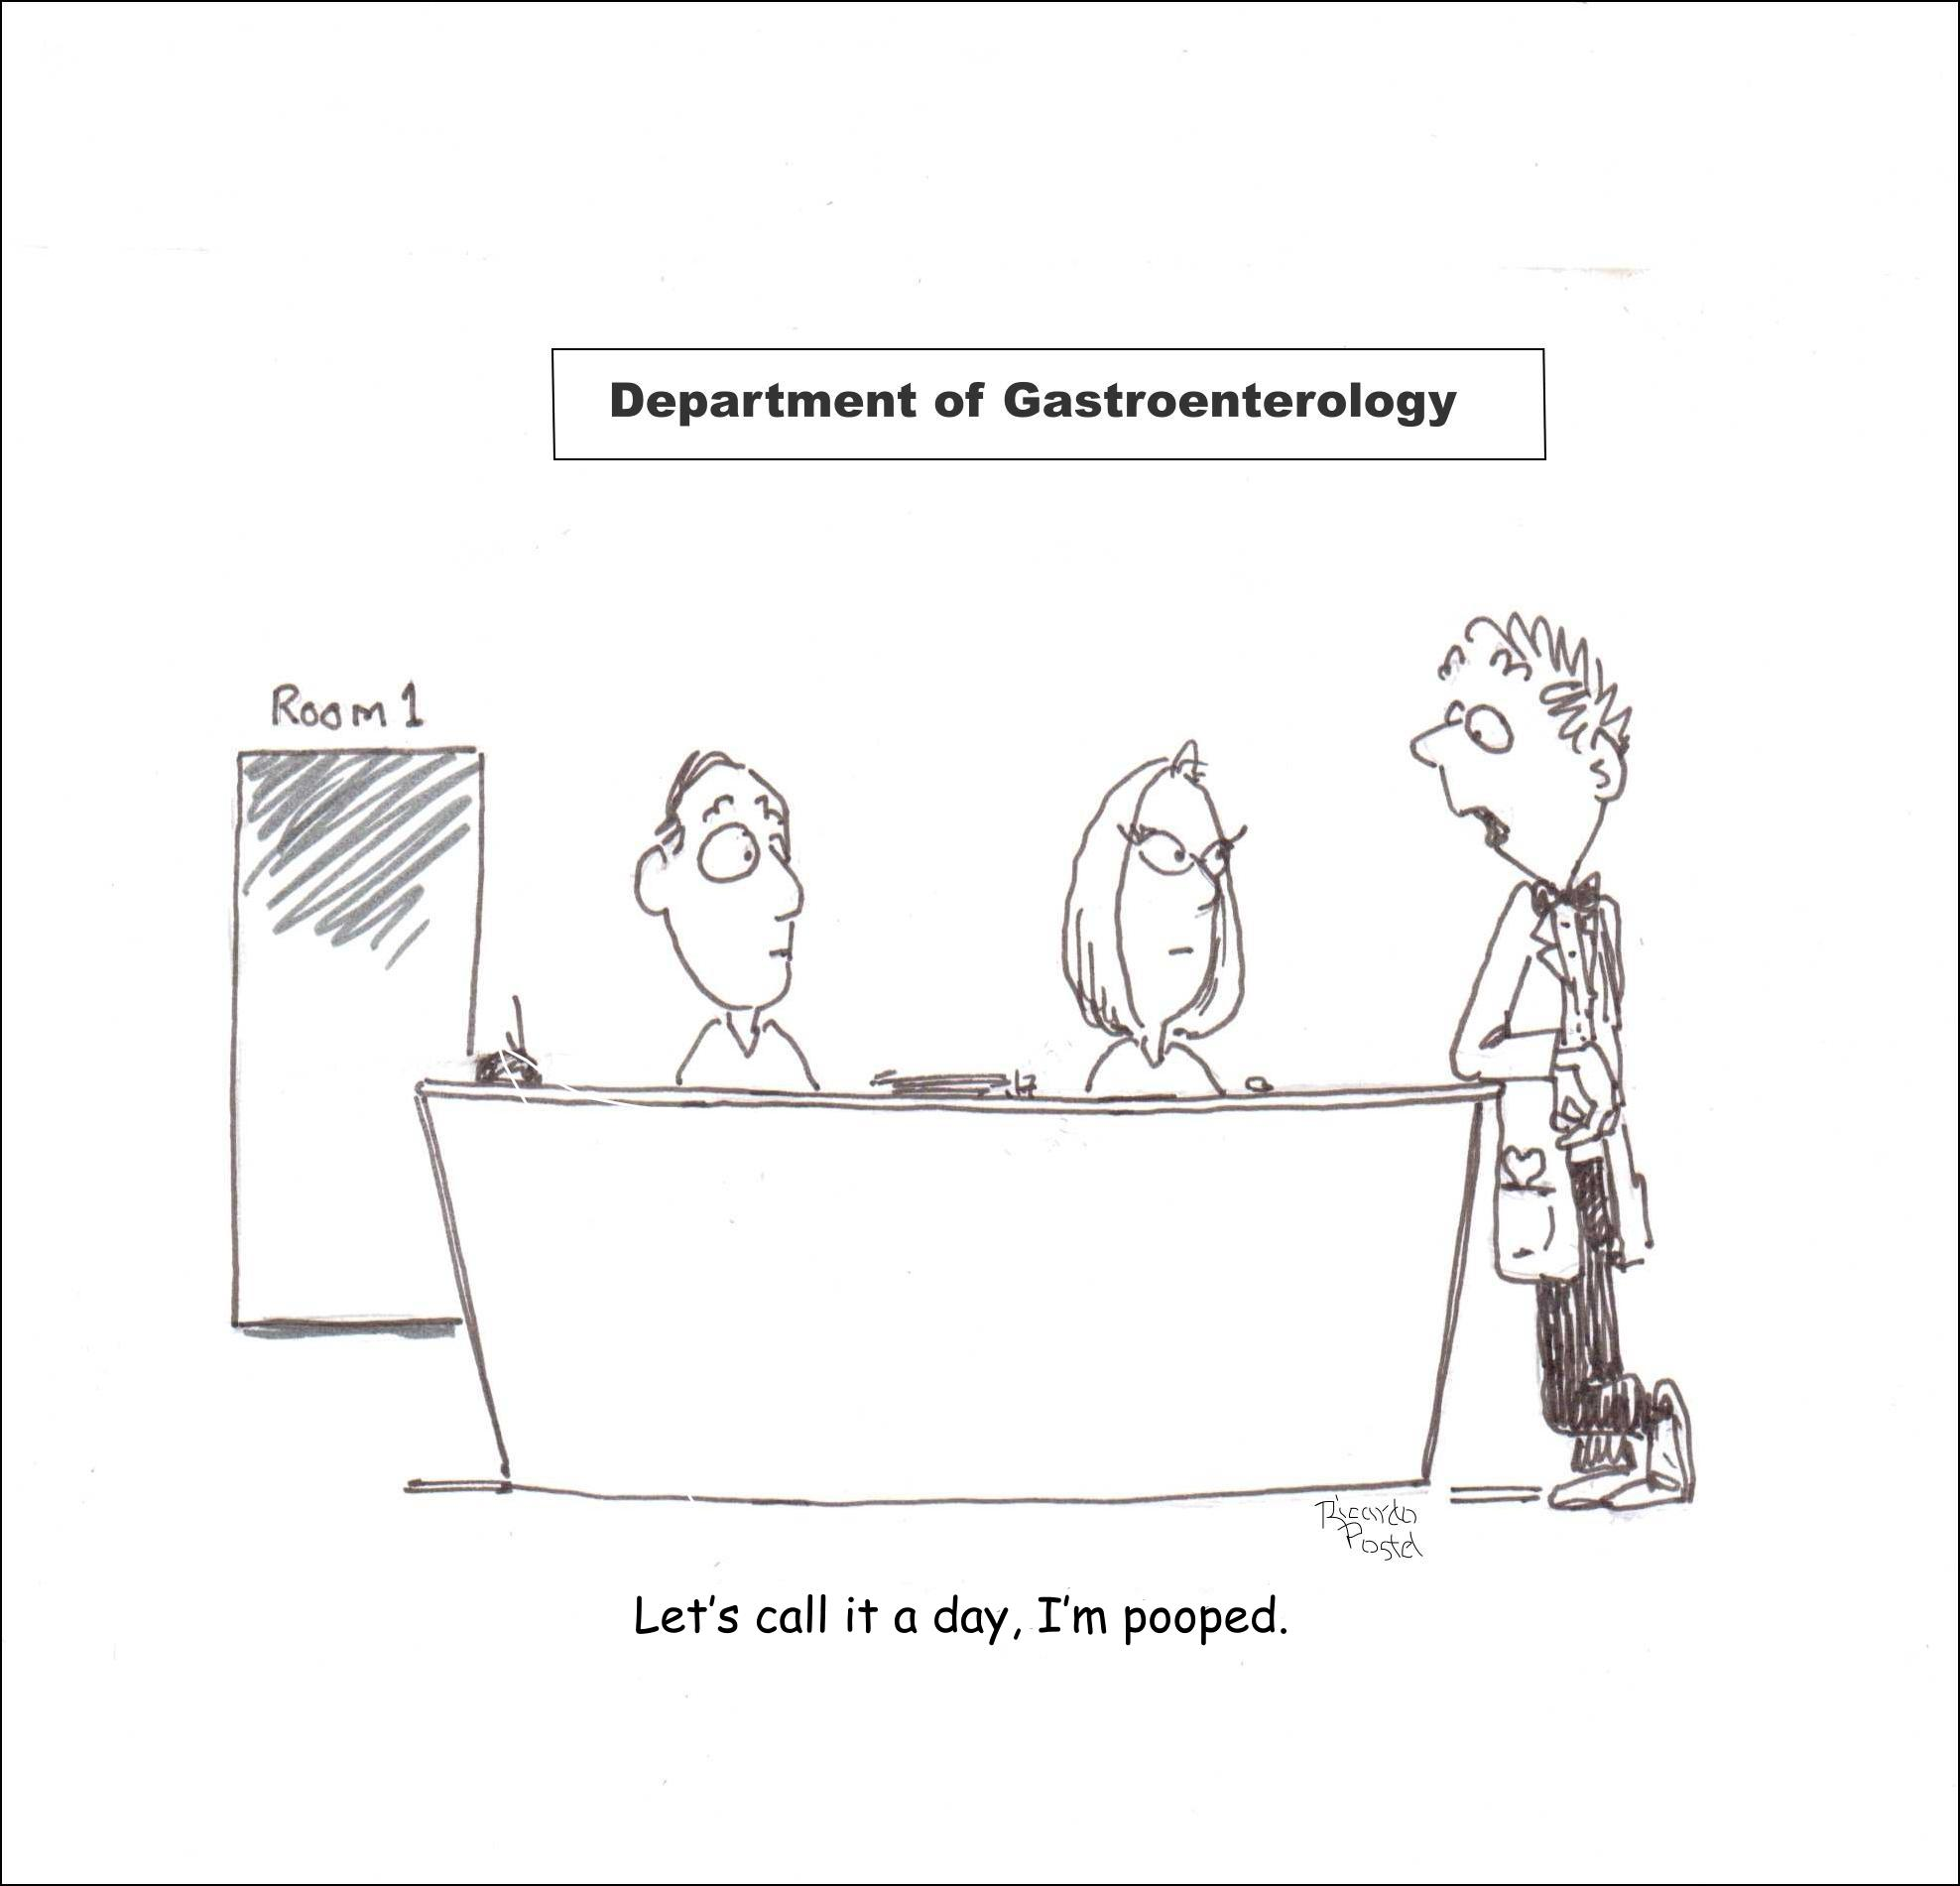 Nurse cartoons - Gastroenterology